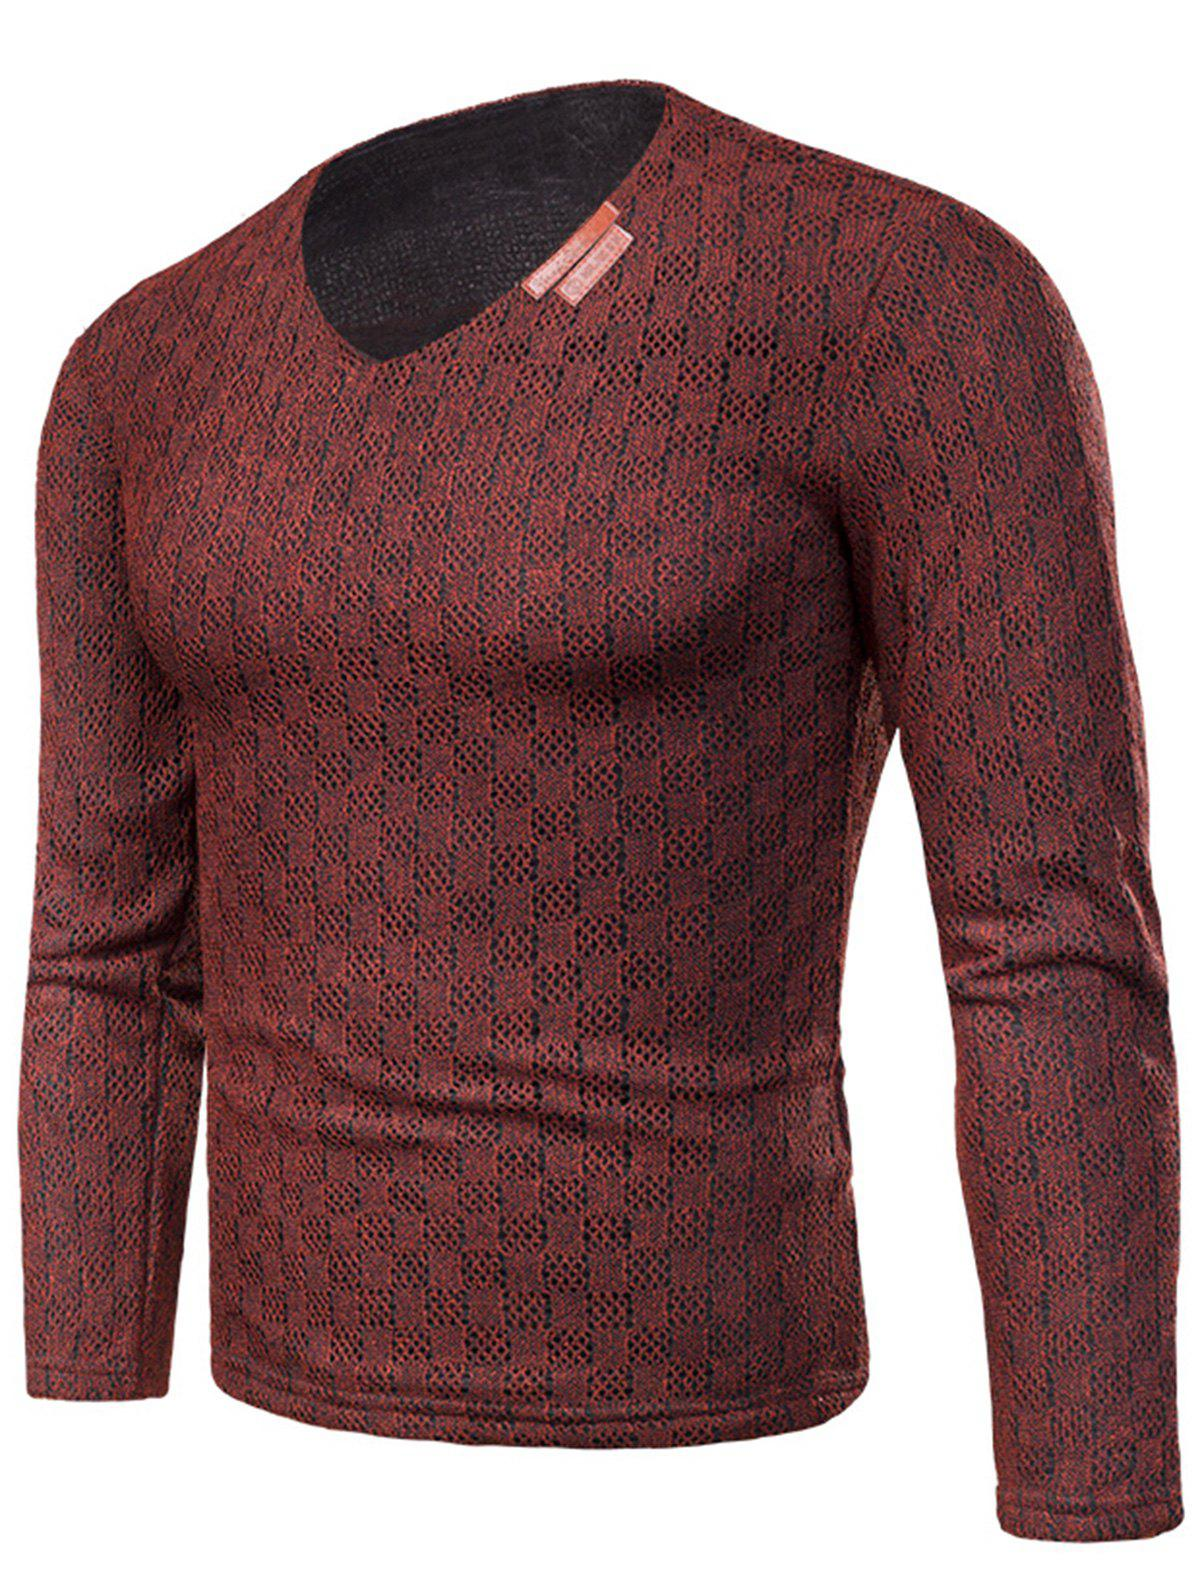 Shops V Neck Applique Knitted Fleece T-shirt